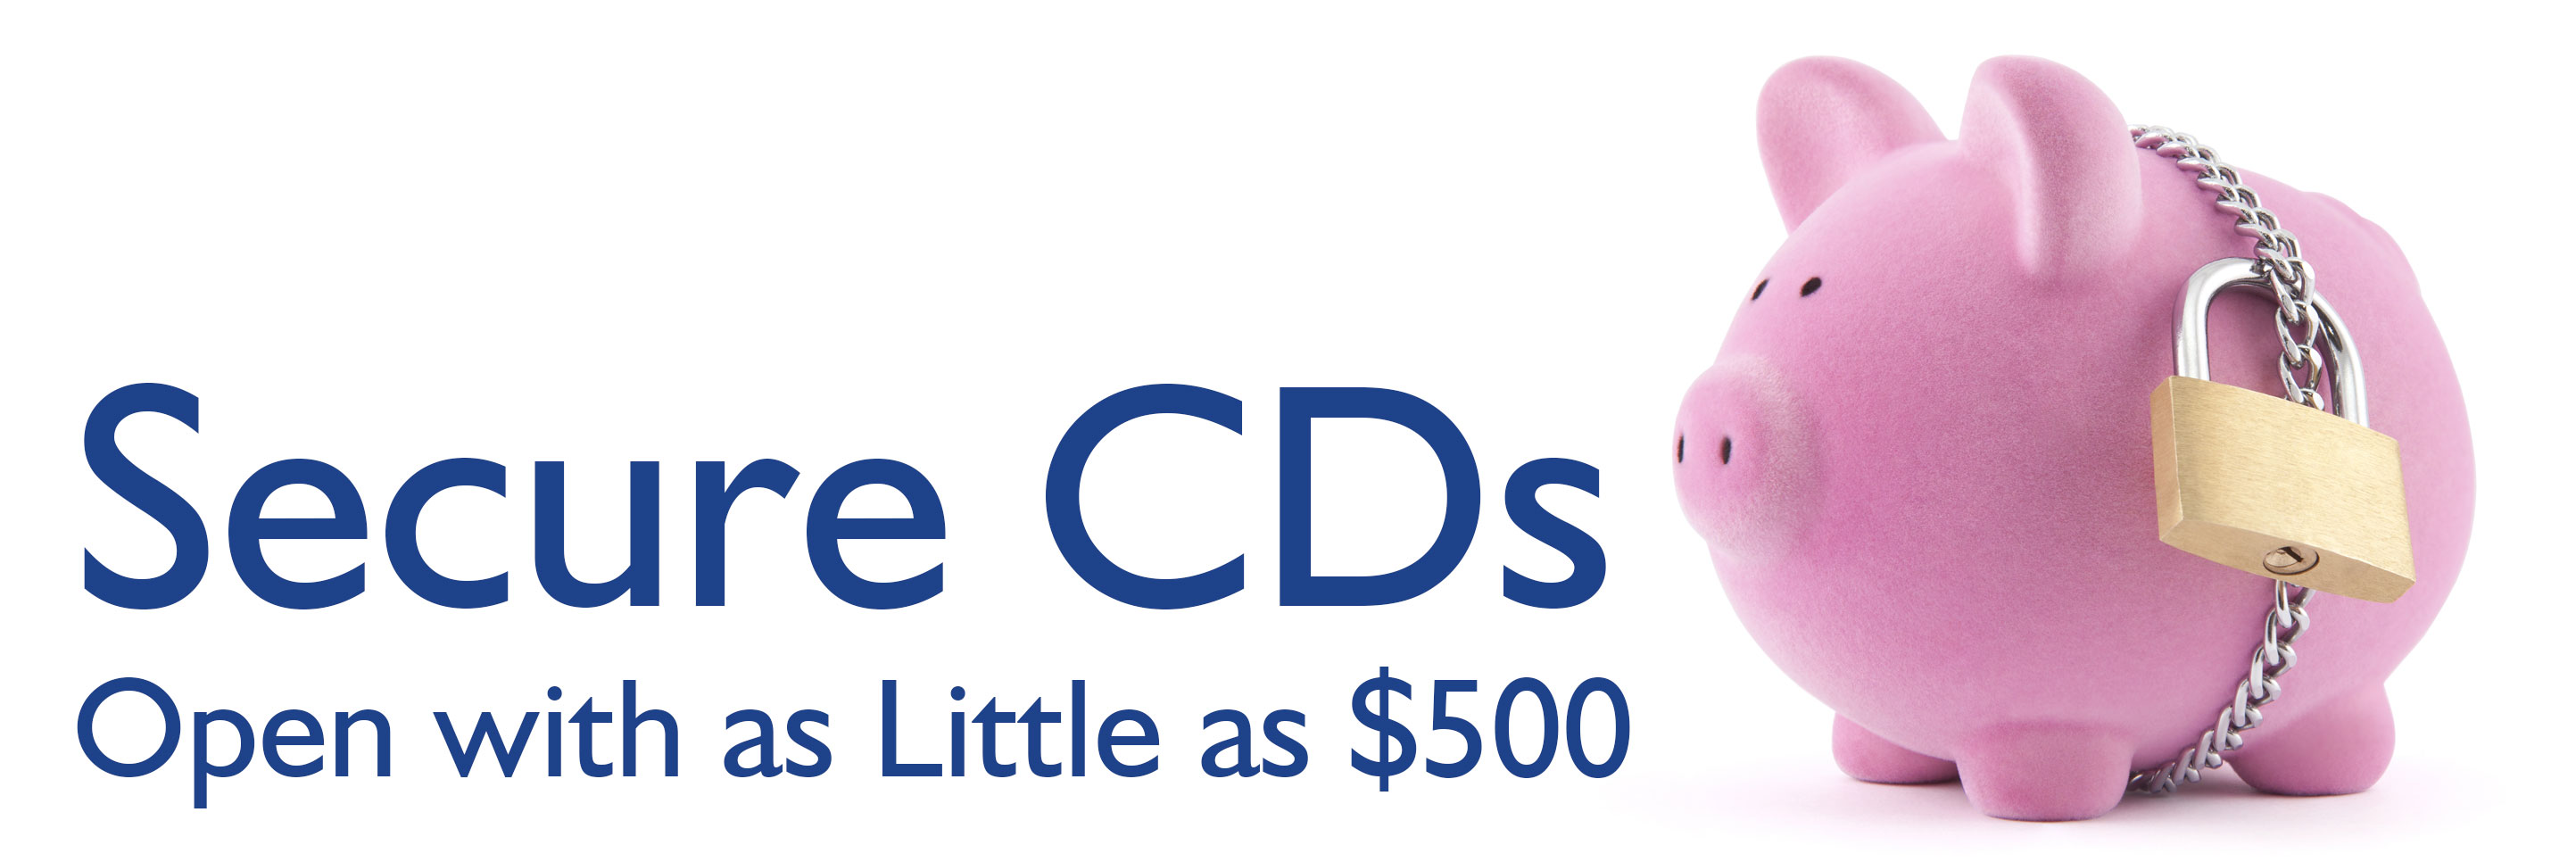 Secure CDs with a competitive dividend.